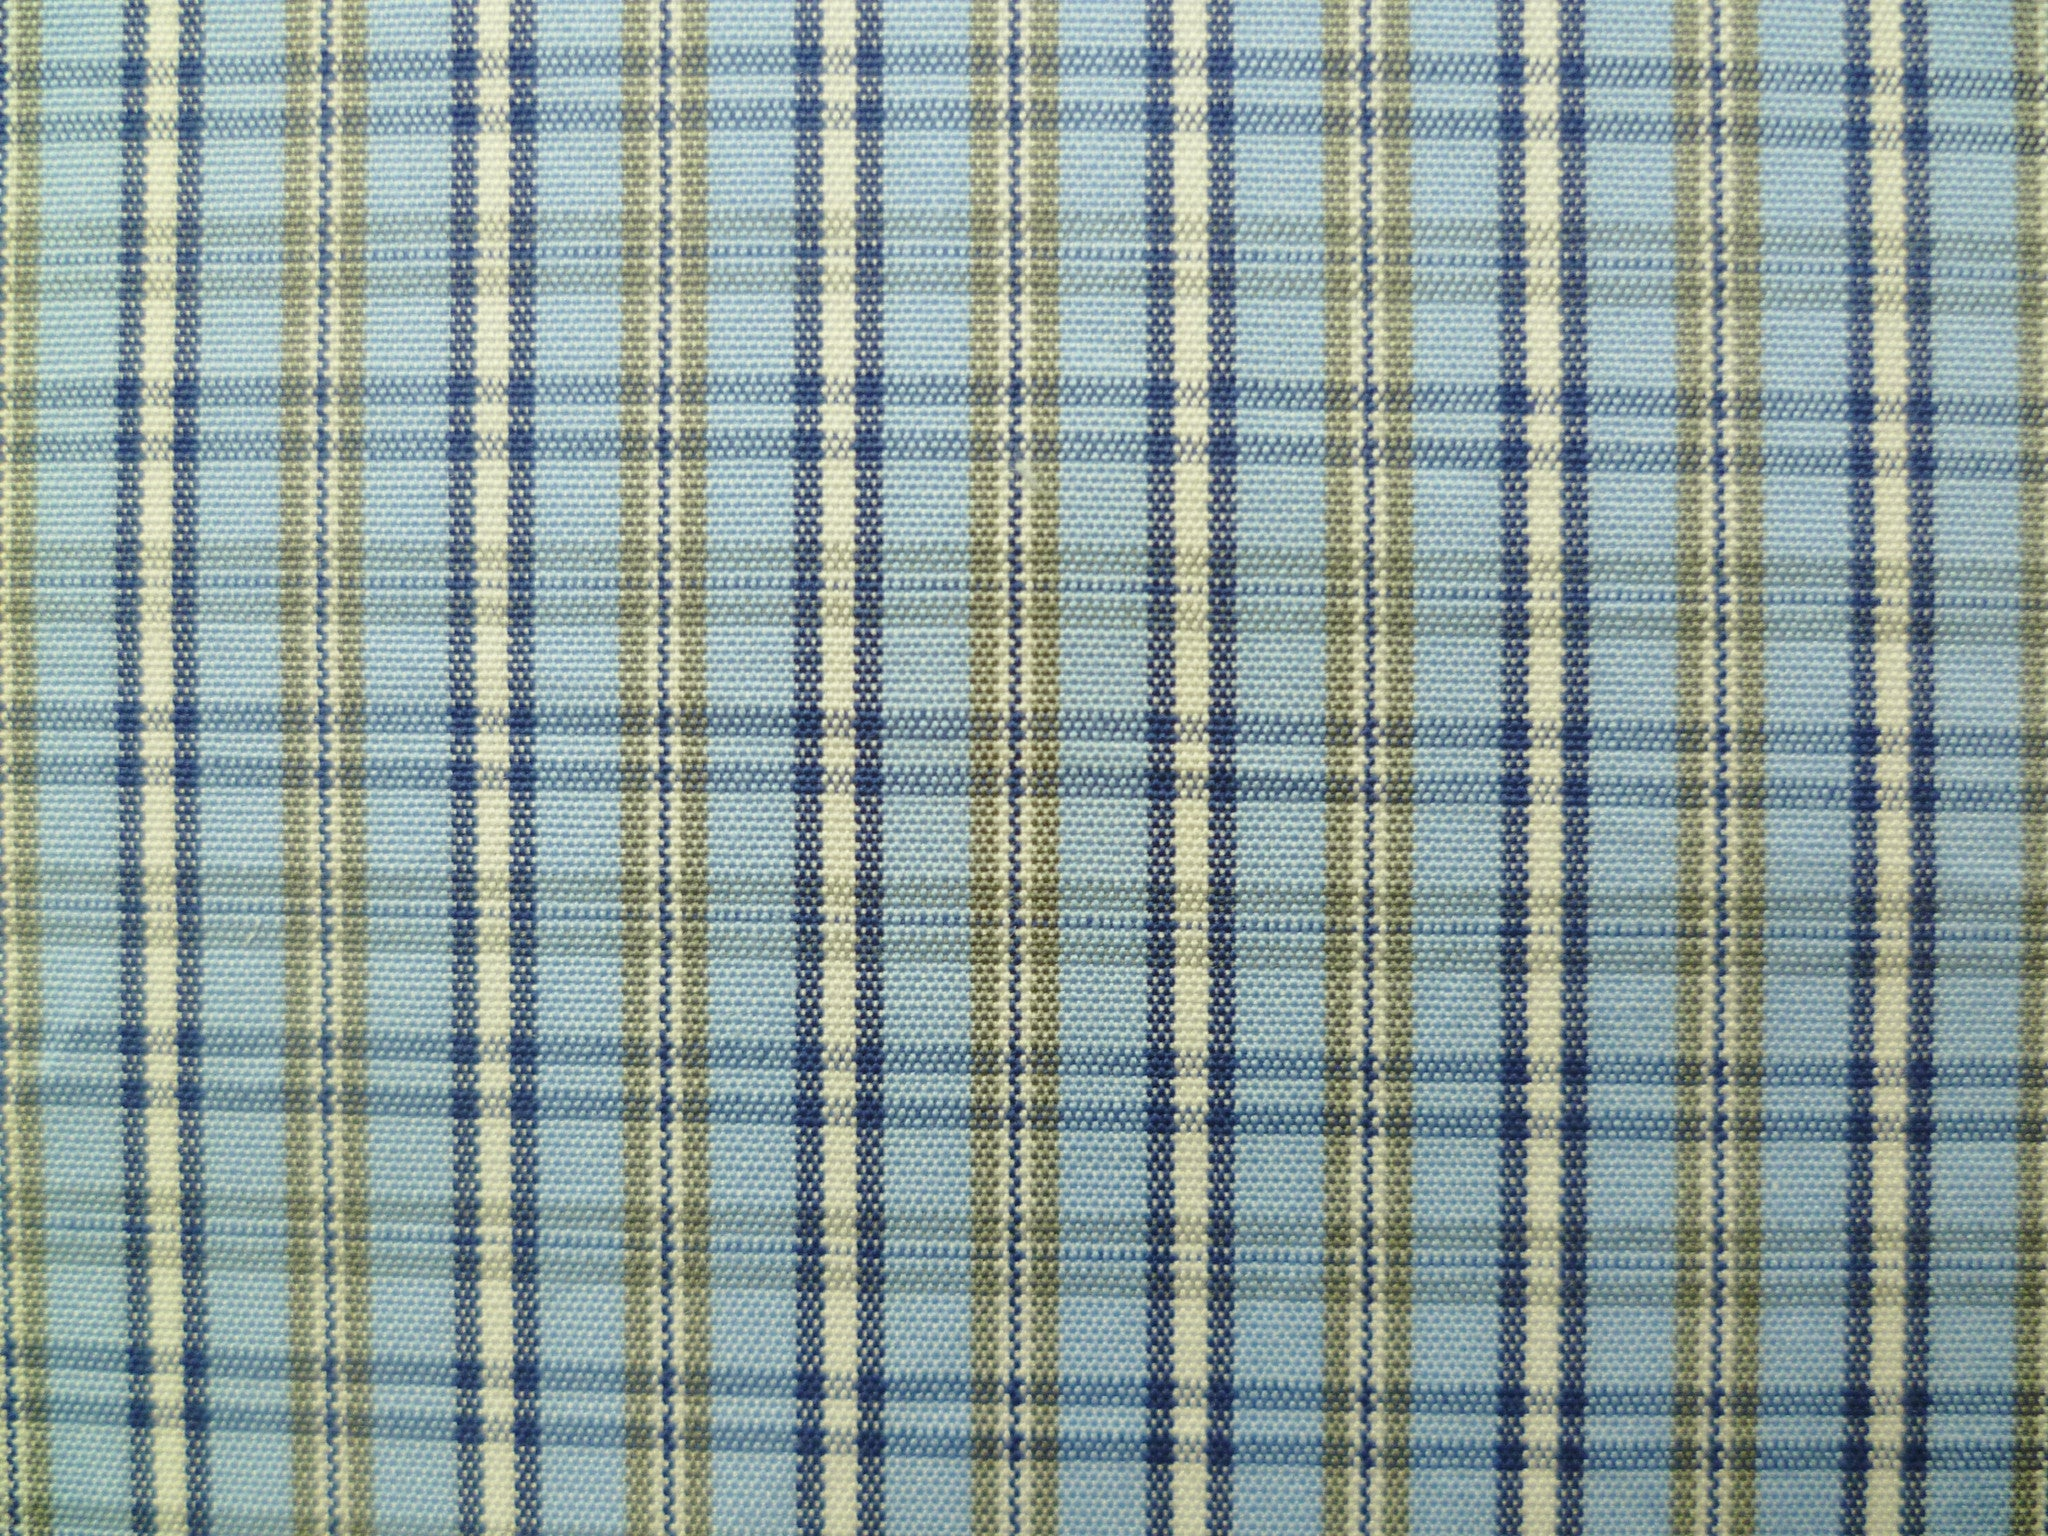 Navy, Baby Blue, Cement Grey and White Checked Cotton